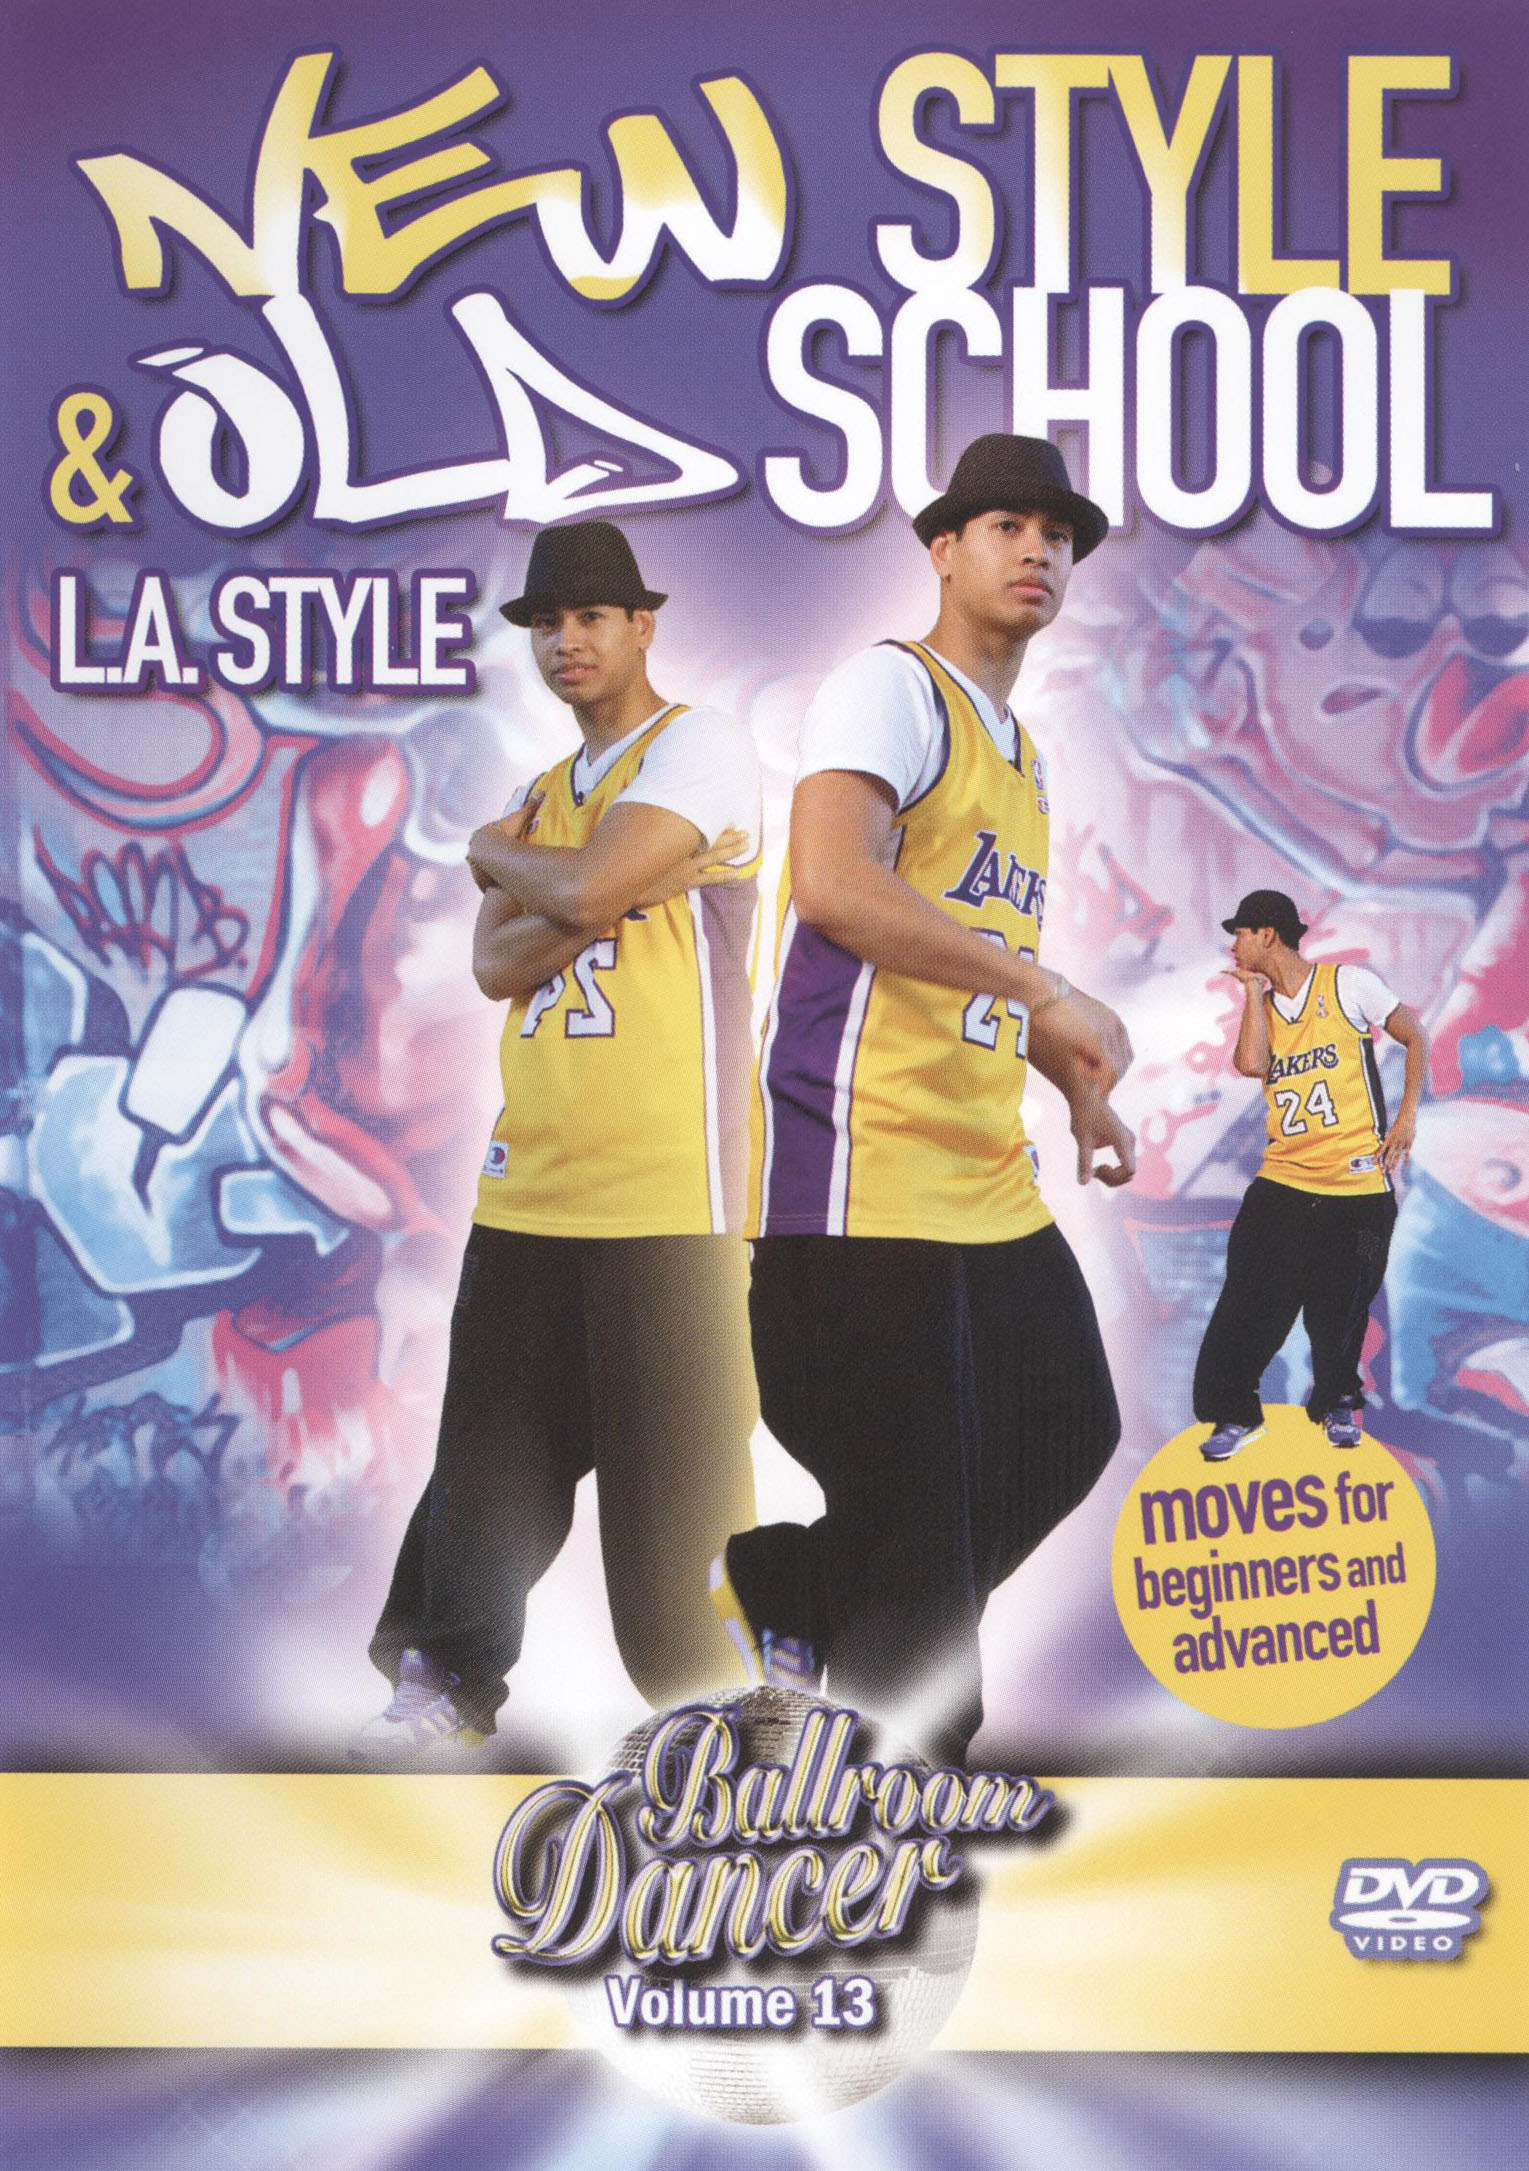 Ballroom Dancer, Vol. 13: New Style & Old School - L.A. Style